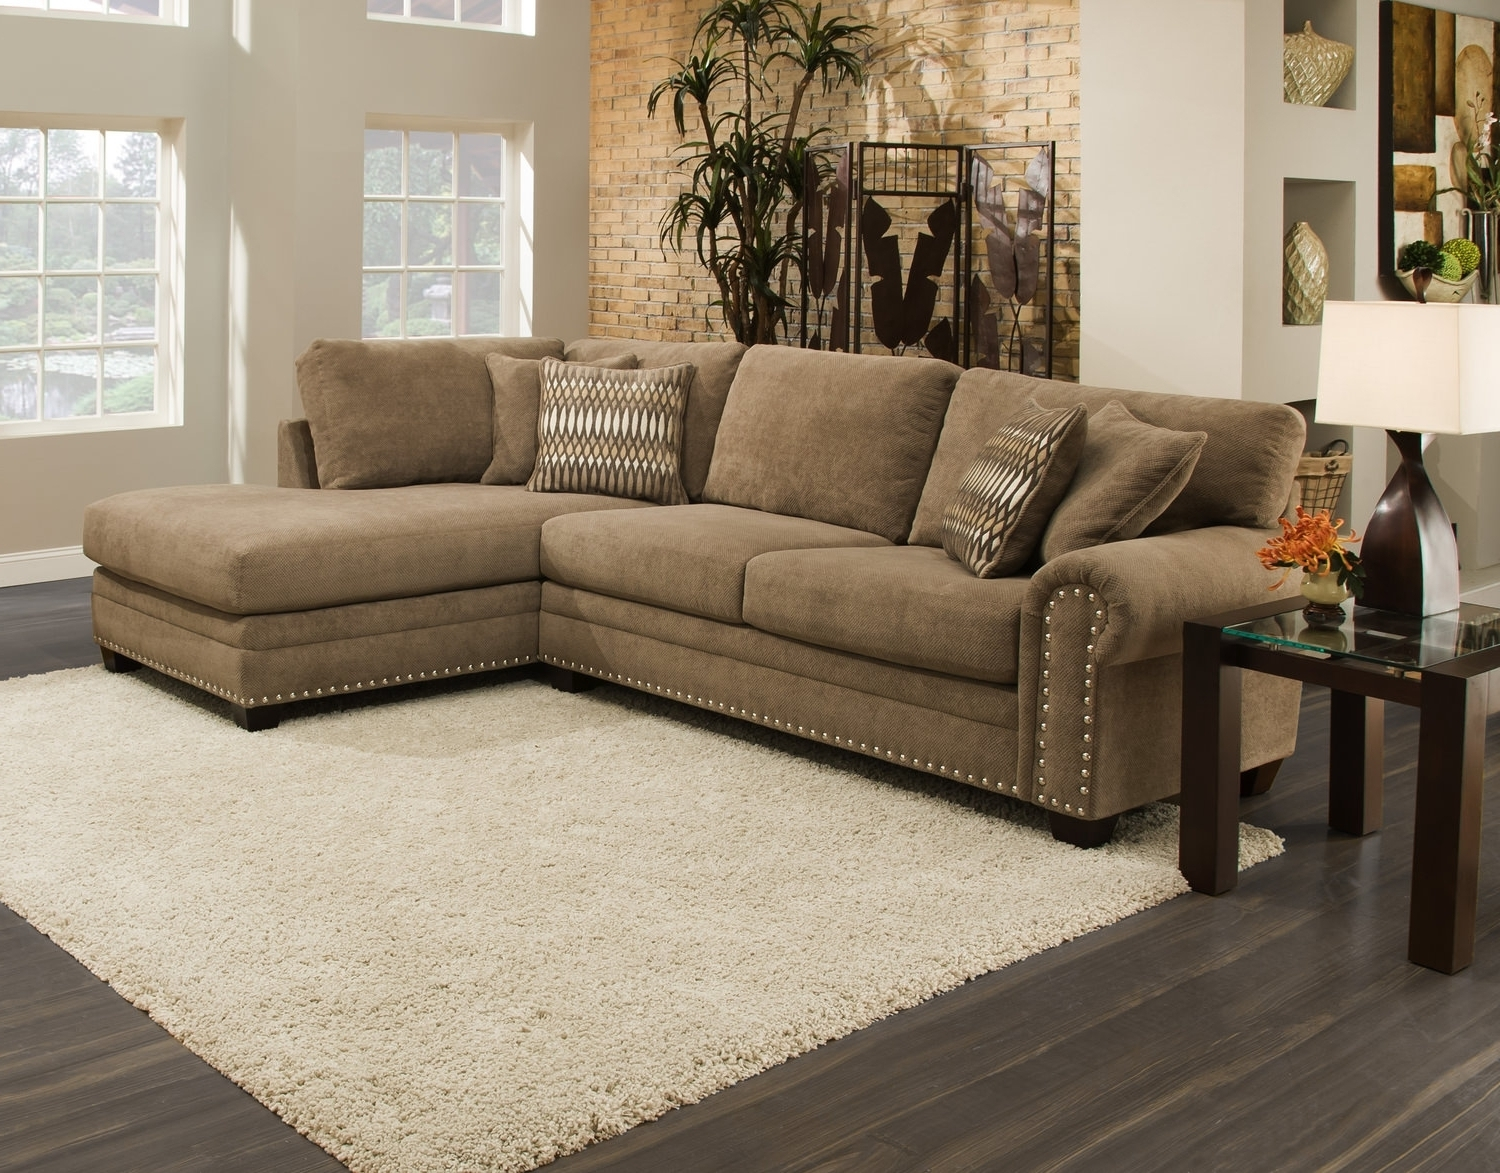 Sectional Sofas Duluth Mn • Sectional Sofa In Newest Duluth Mn Sectional Sofas (View 17 of 20)